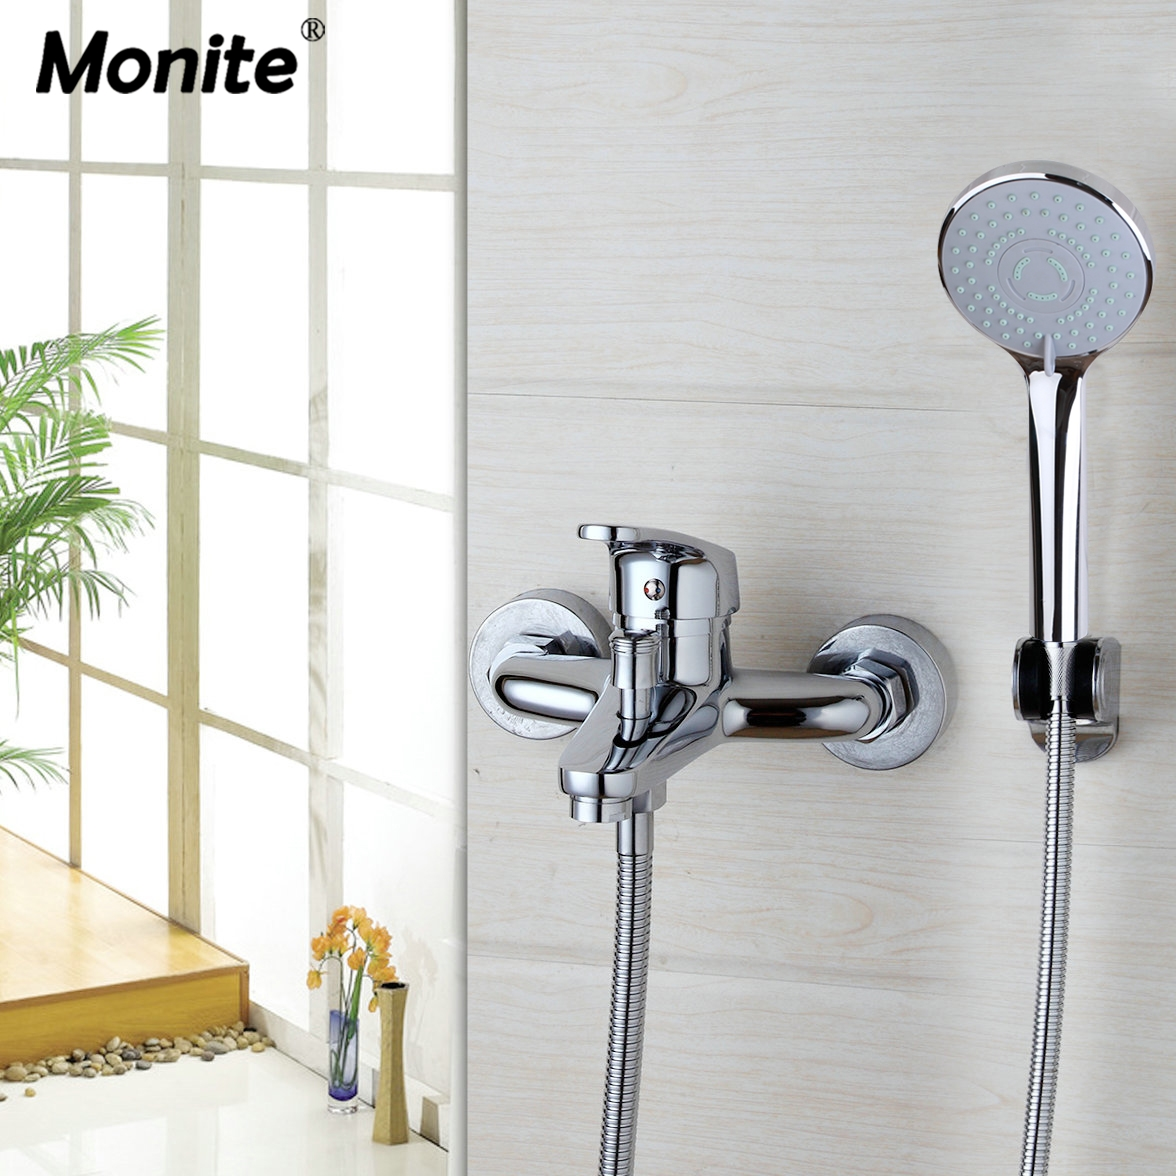 Wall Mounted Rain Shower Set Luxury Square Shower Head Shower Set with Hand Shower Set Faucets